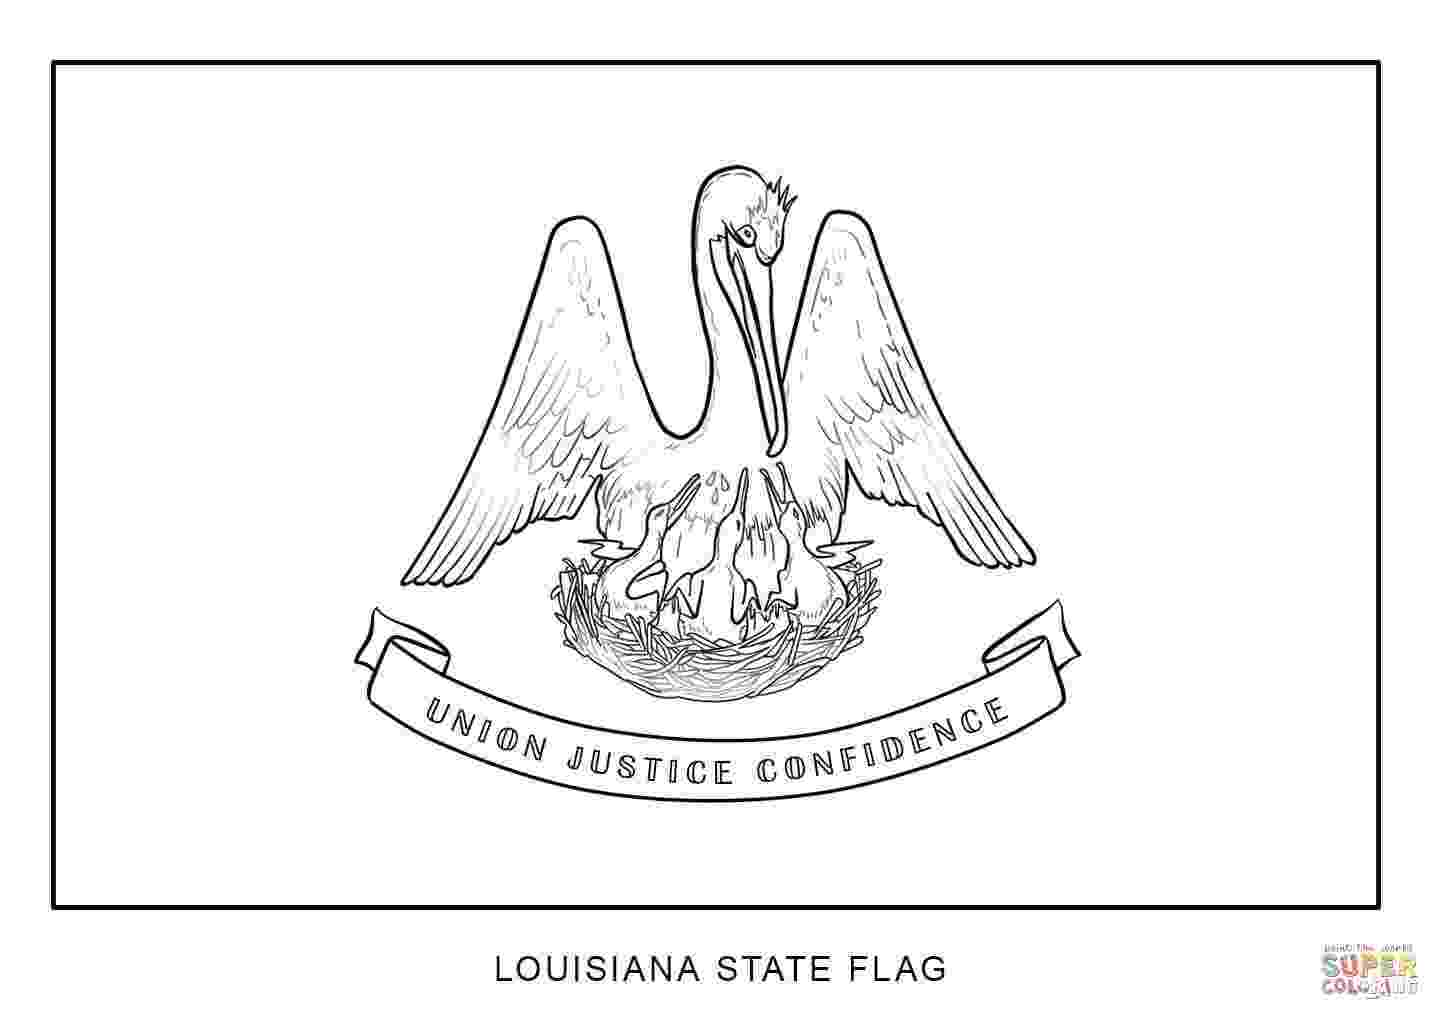 massachusetts state flag coloring page massachusetts flag coloring page coloring home massachusetts flag page coloring state